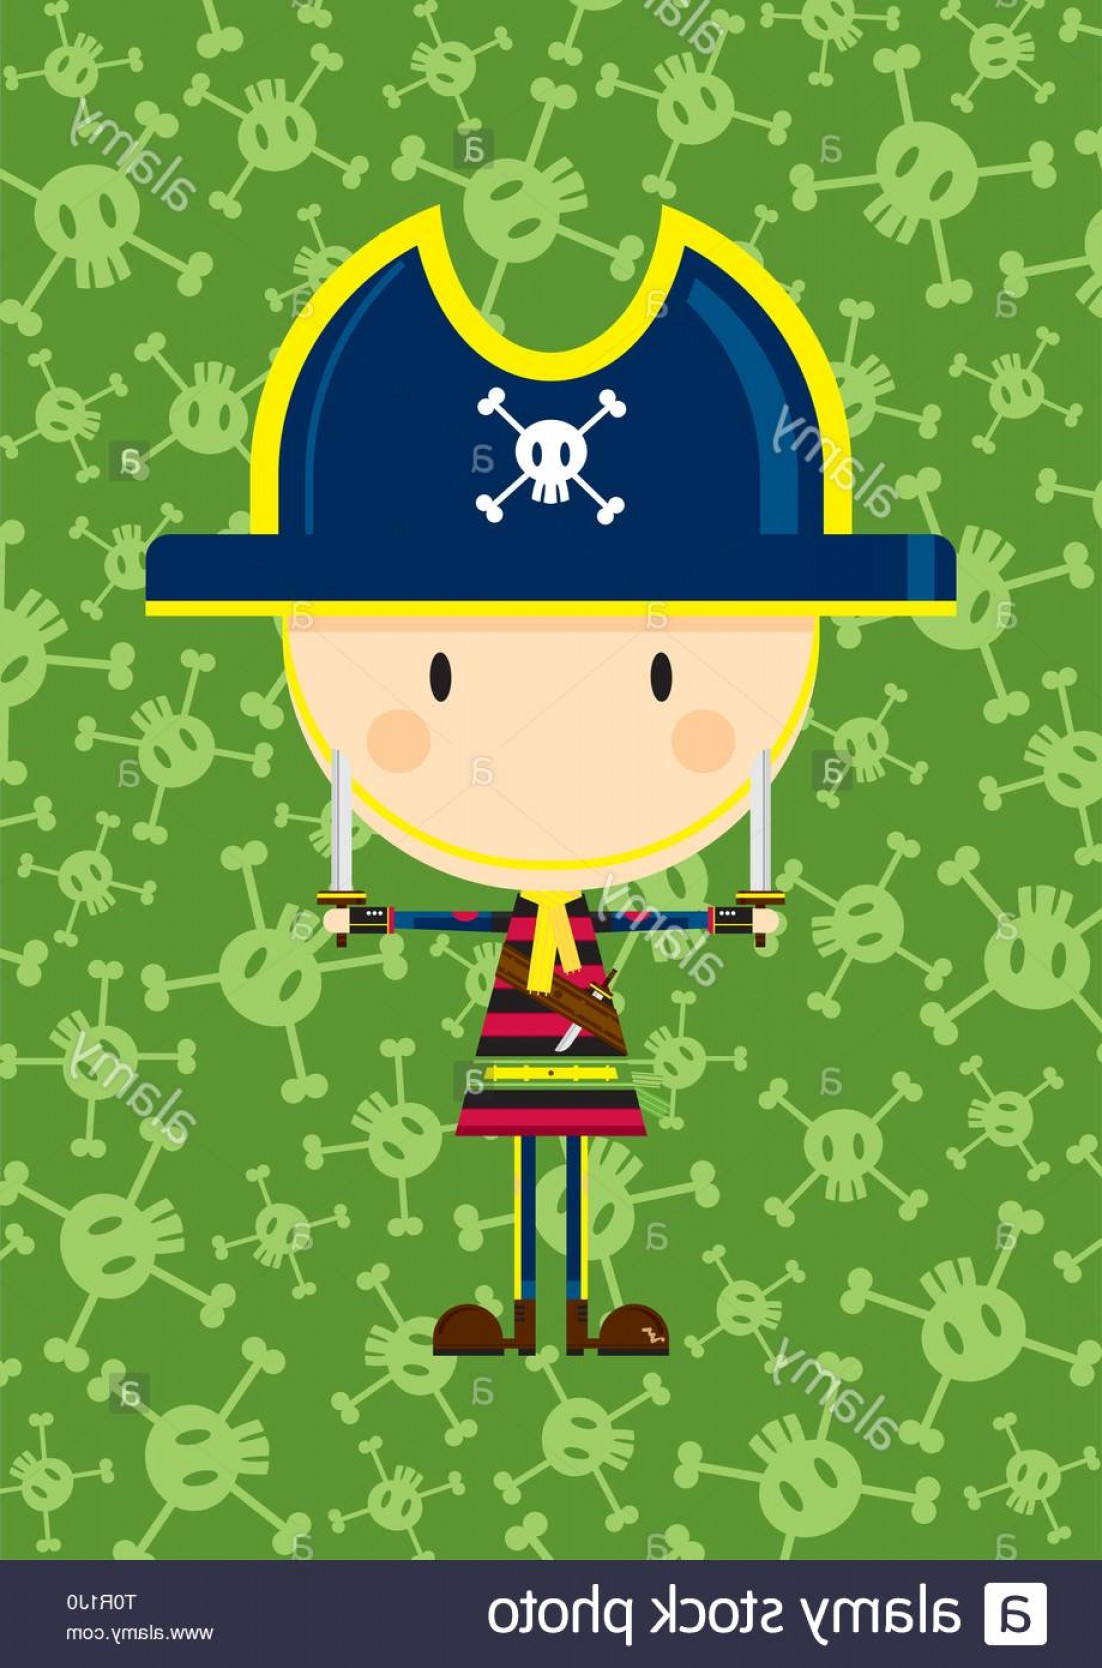 Cartoon Pirate Vector Art: Cartoon Pirate Captain With Sword On A Skull And Crossbones Background Image